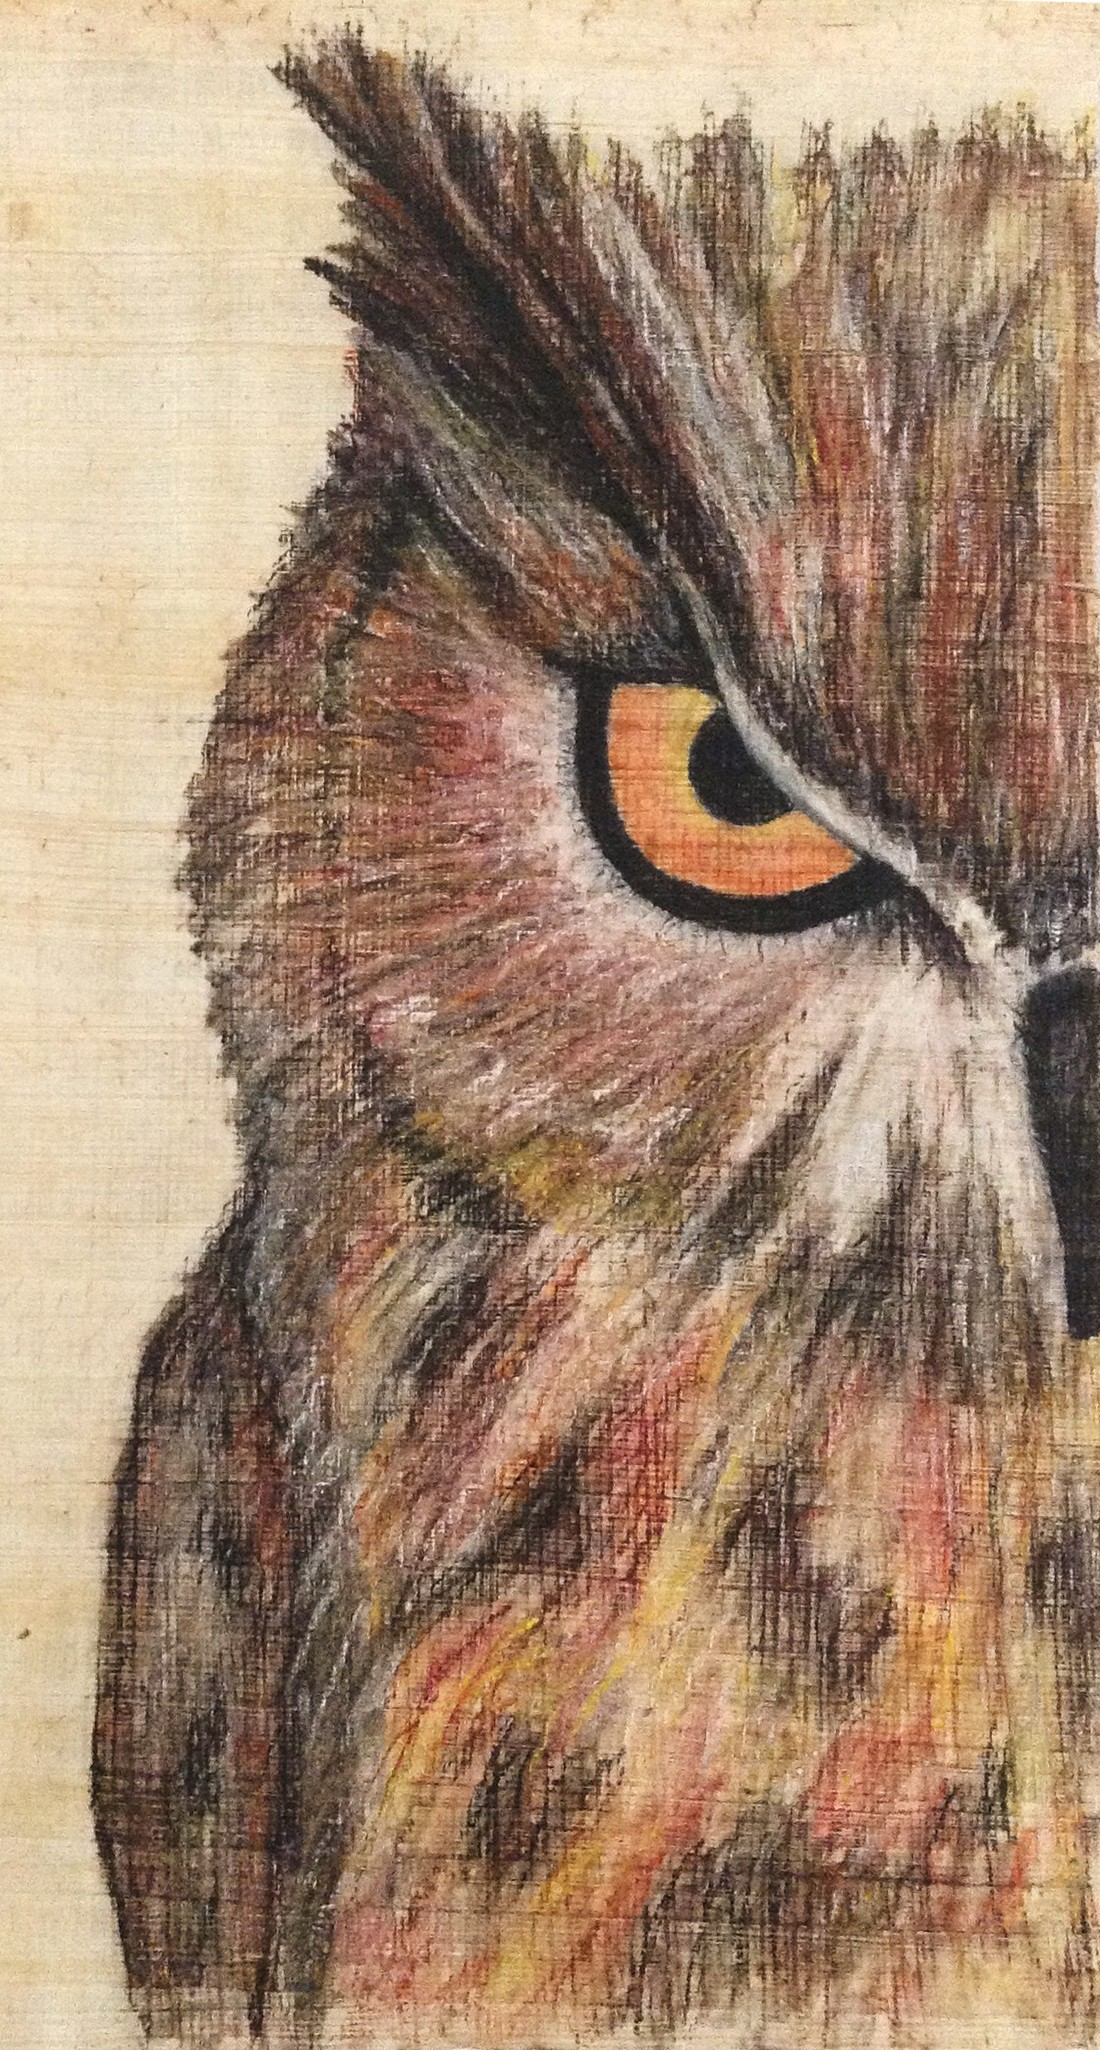 Portrait-of-an-Owl.jpg